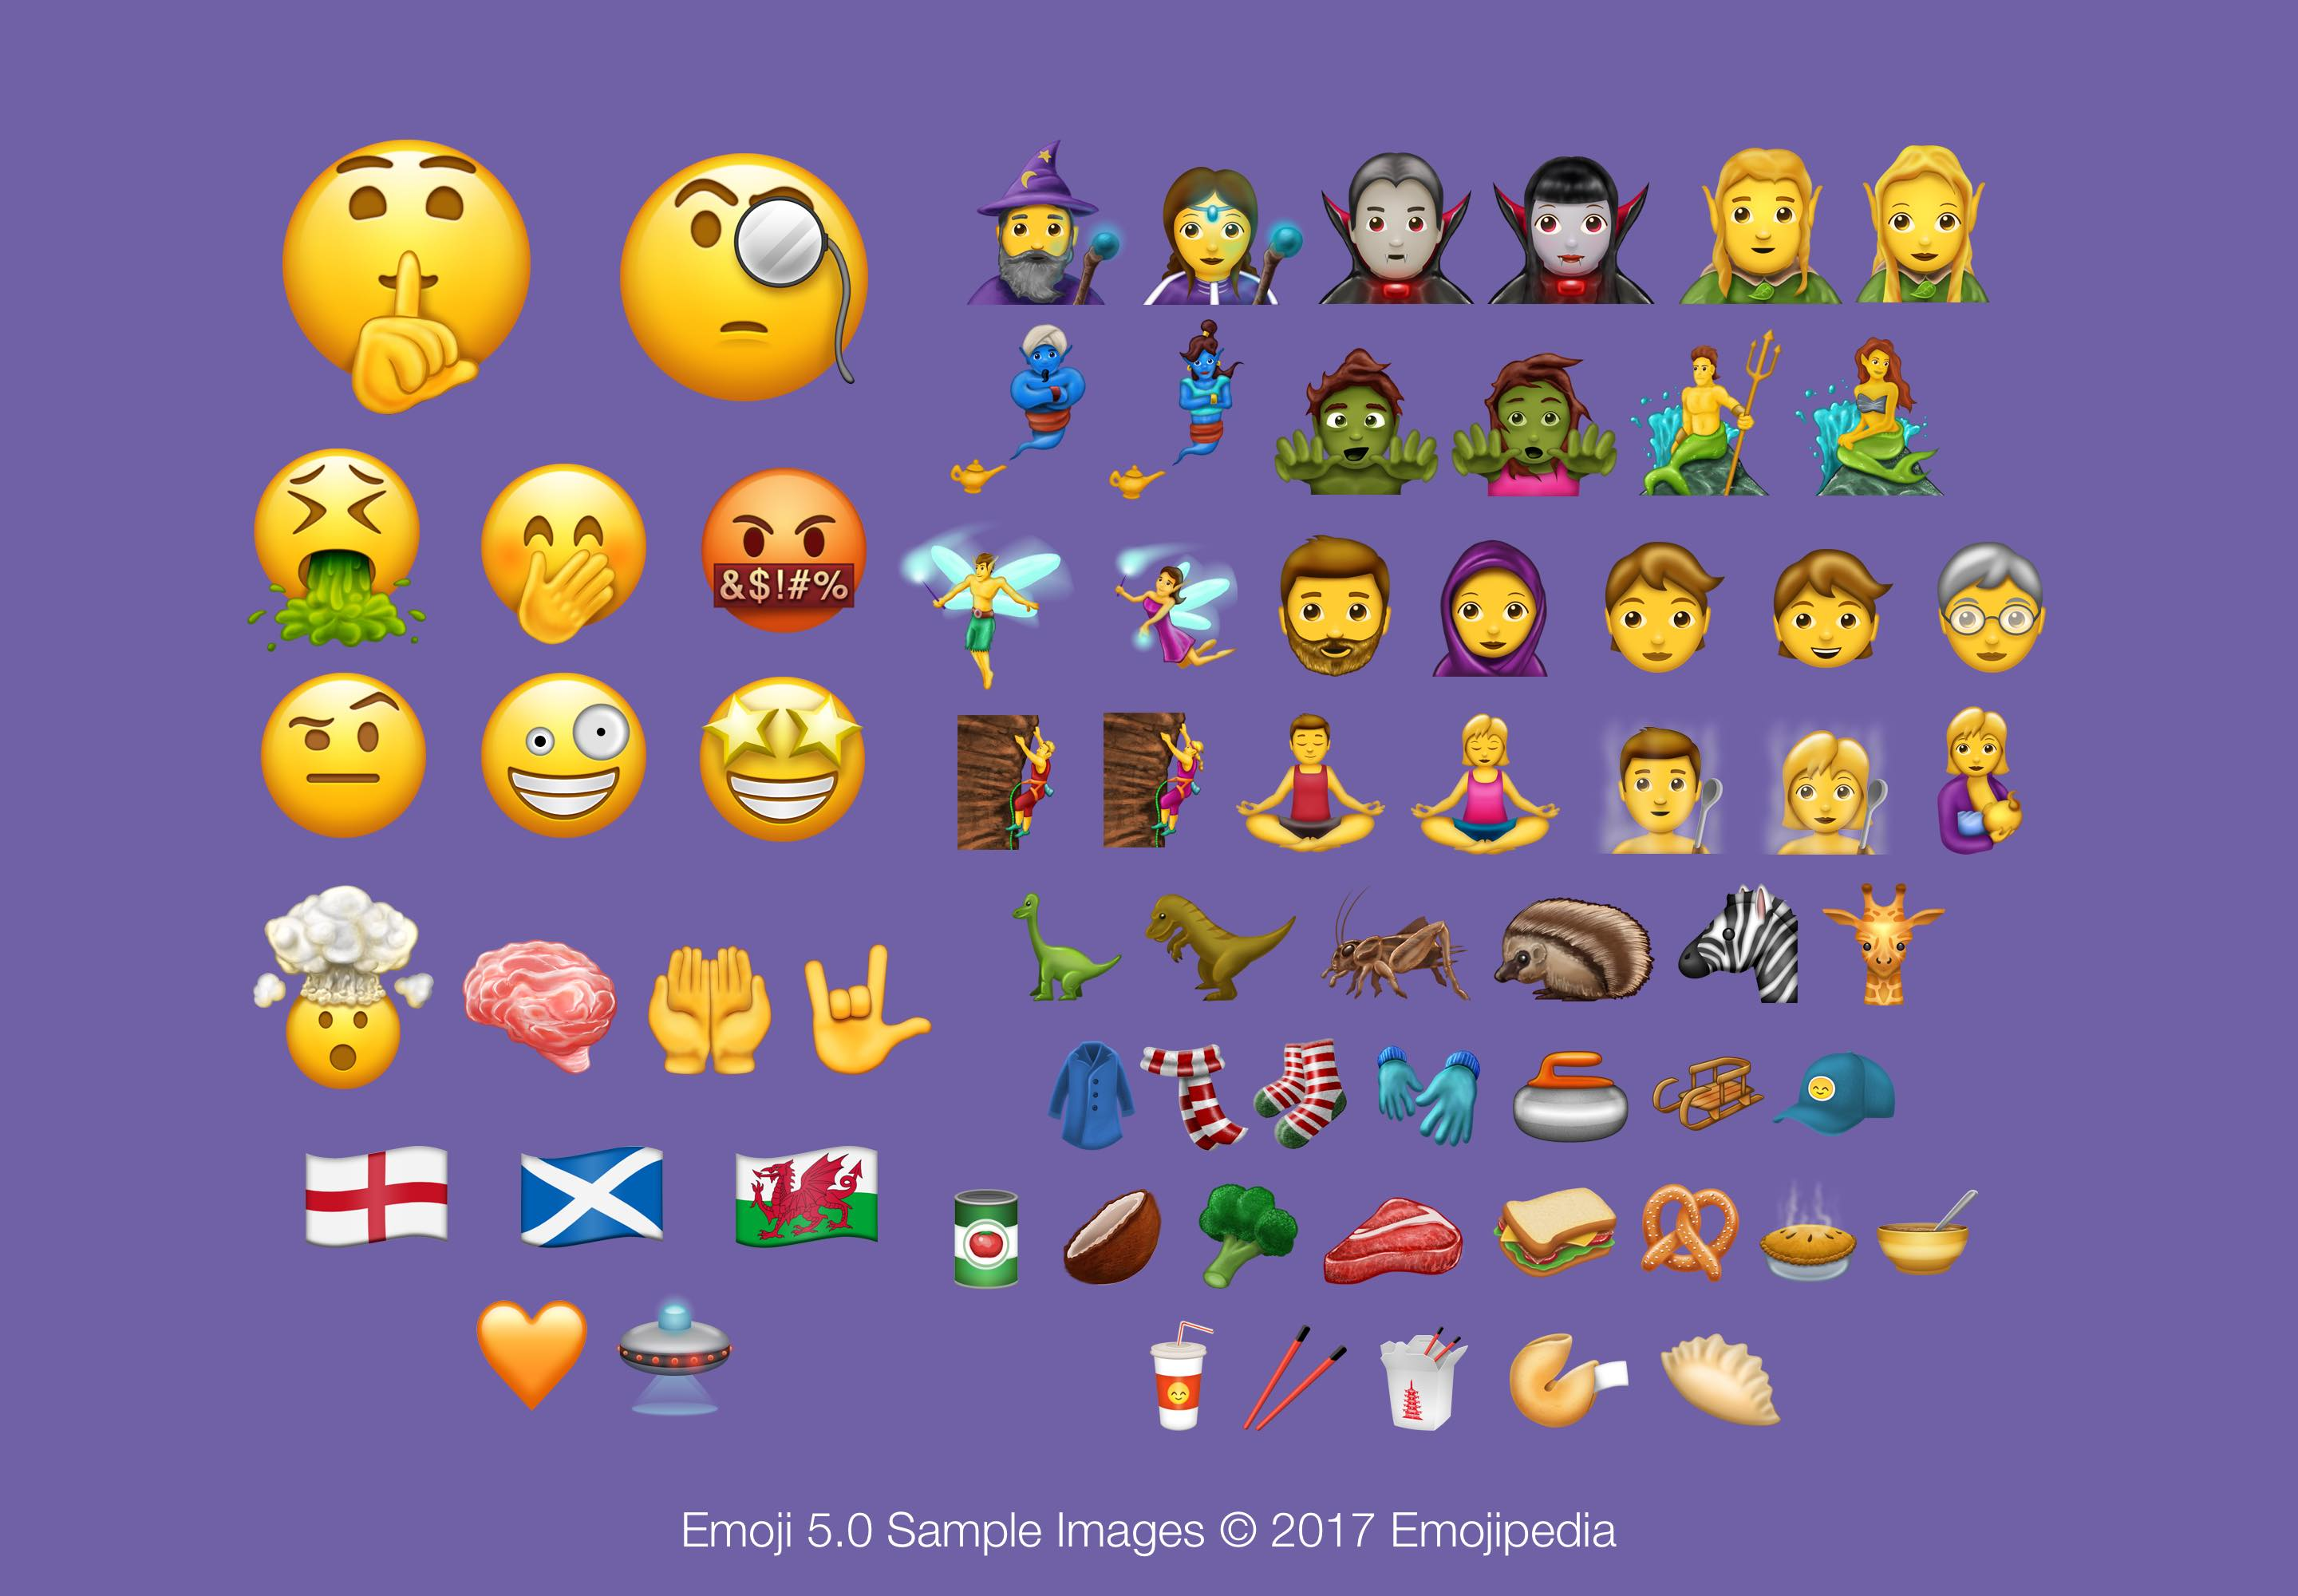 emoji-5-sample-images-overview-emojipedia